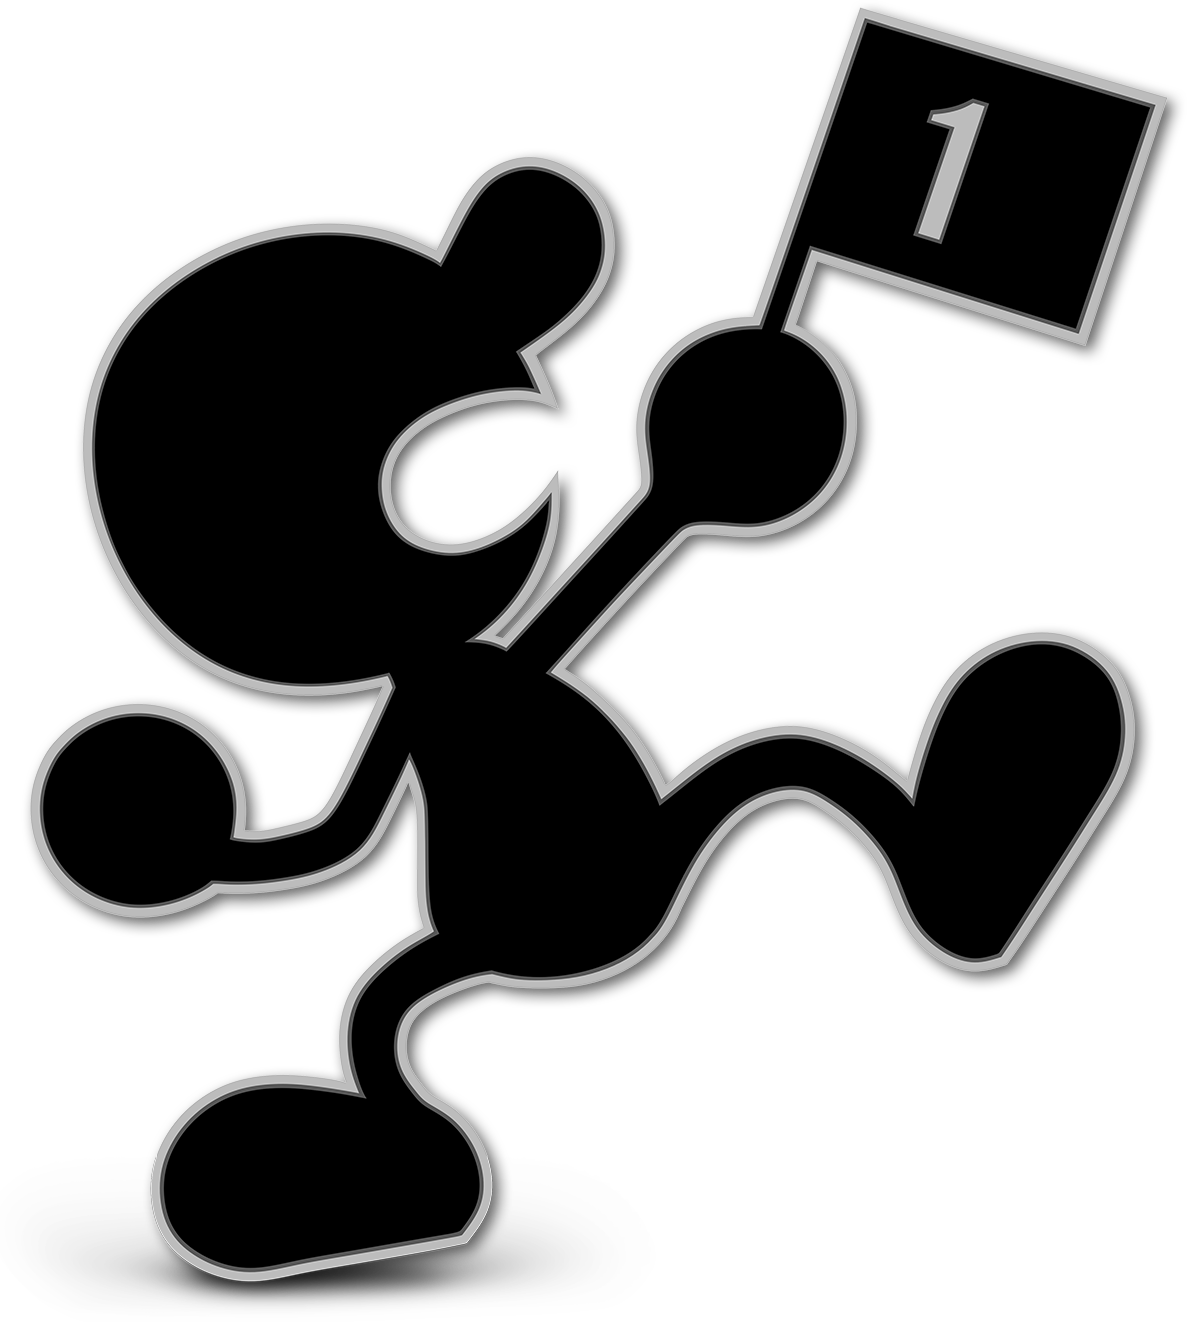 Mr. Game & Watch (SSBU)